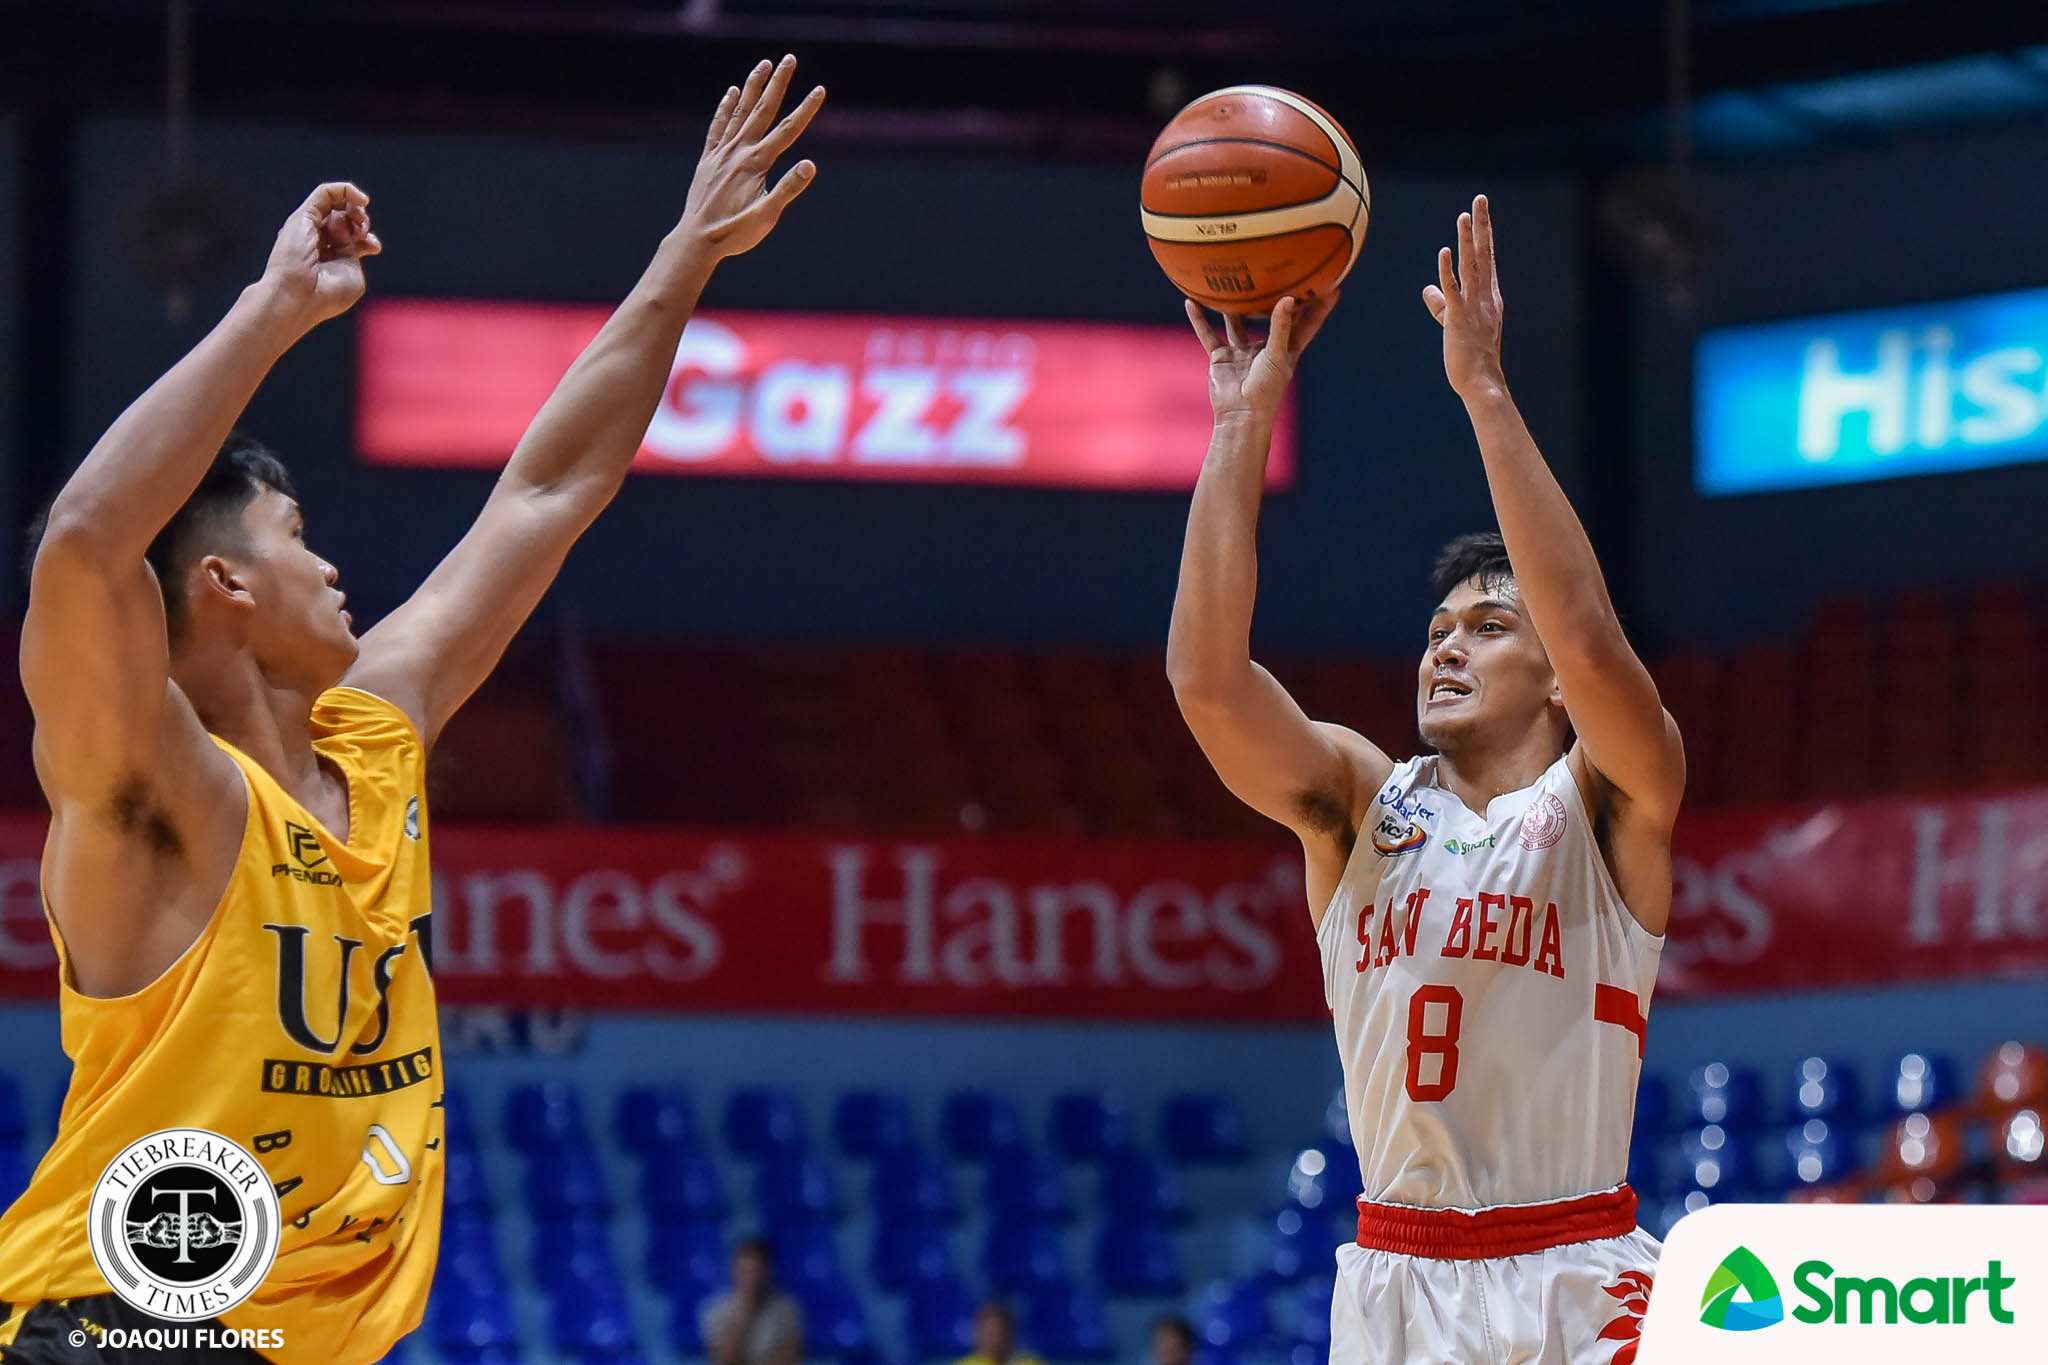 Tiebreaker Times Peter Alfaro continues surge vs UST as San Beda advances to PCCL Final Four Basketball News SBC UST  UST Men's Basketball San Beda Seniors Basketball Ralph Penuela Peter Alfaro James Canlas CJ Cansino Brent Paraiso Boyet Fernandez Aldin Ayo 2020 PCCL National Championship